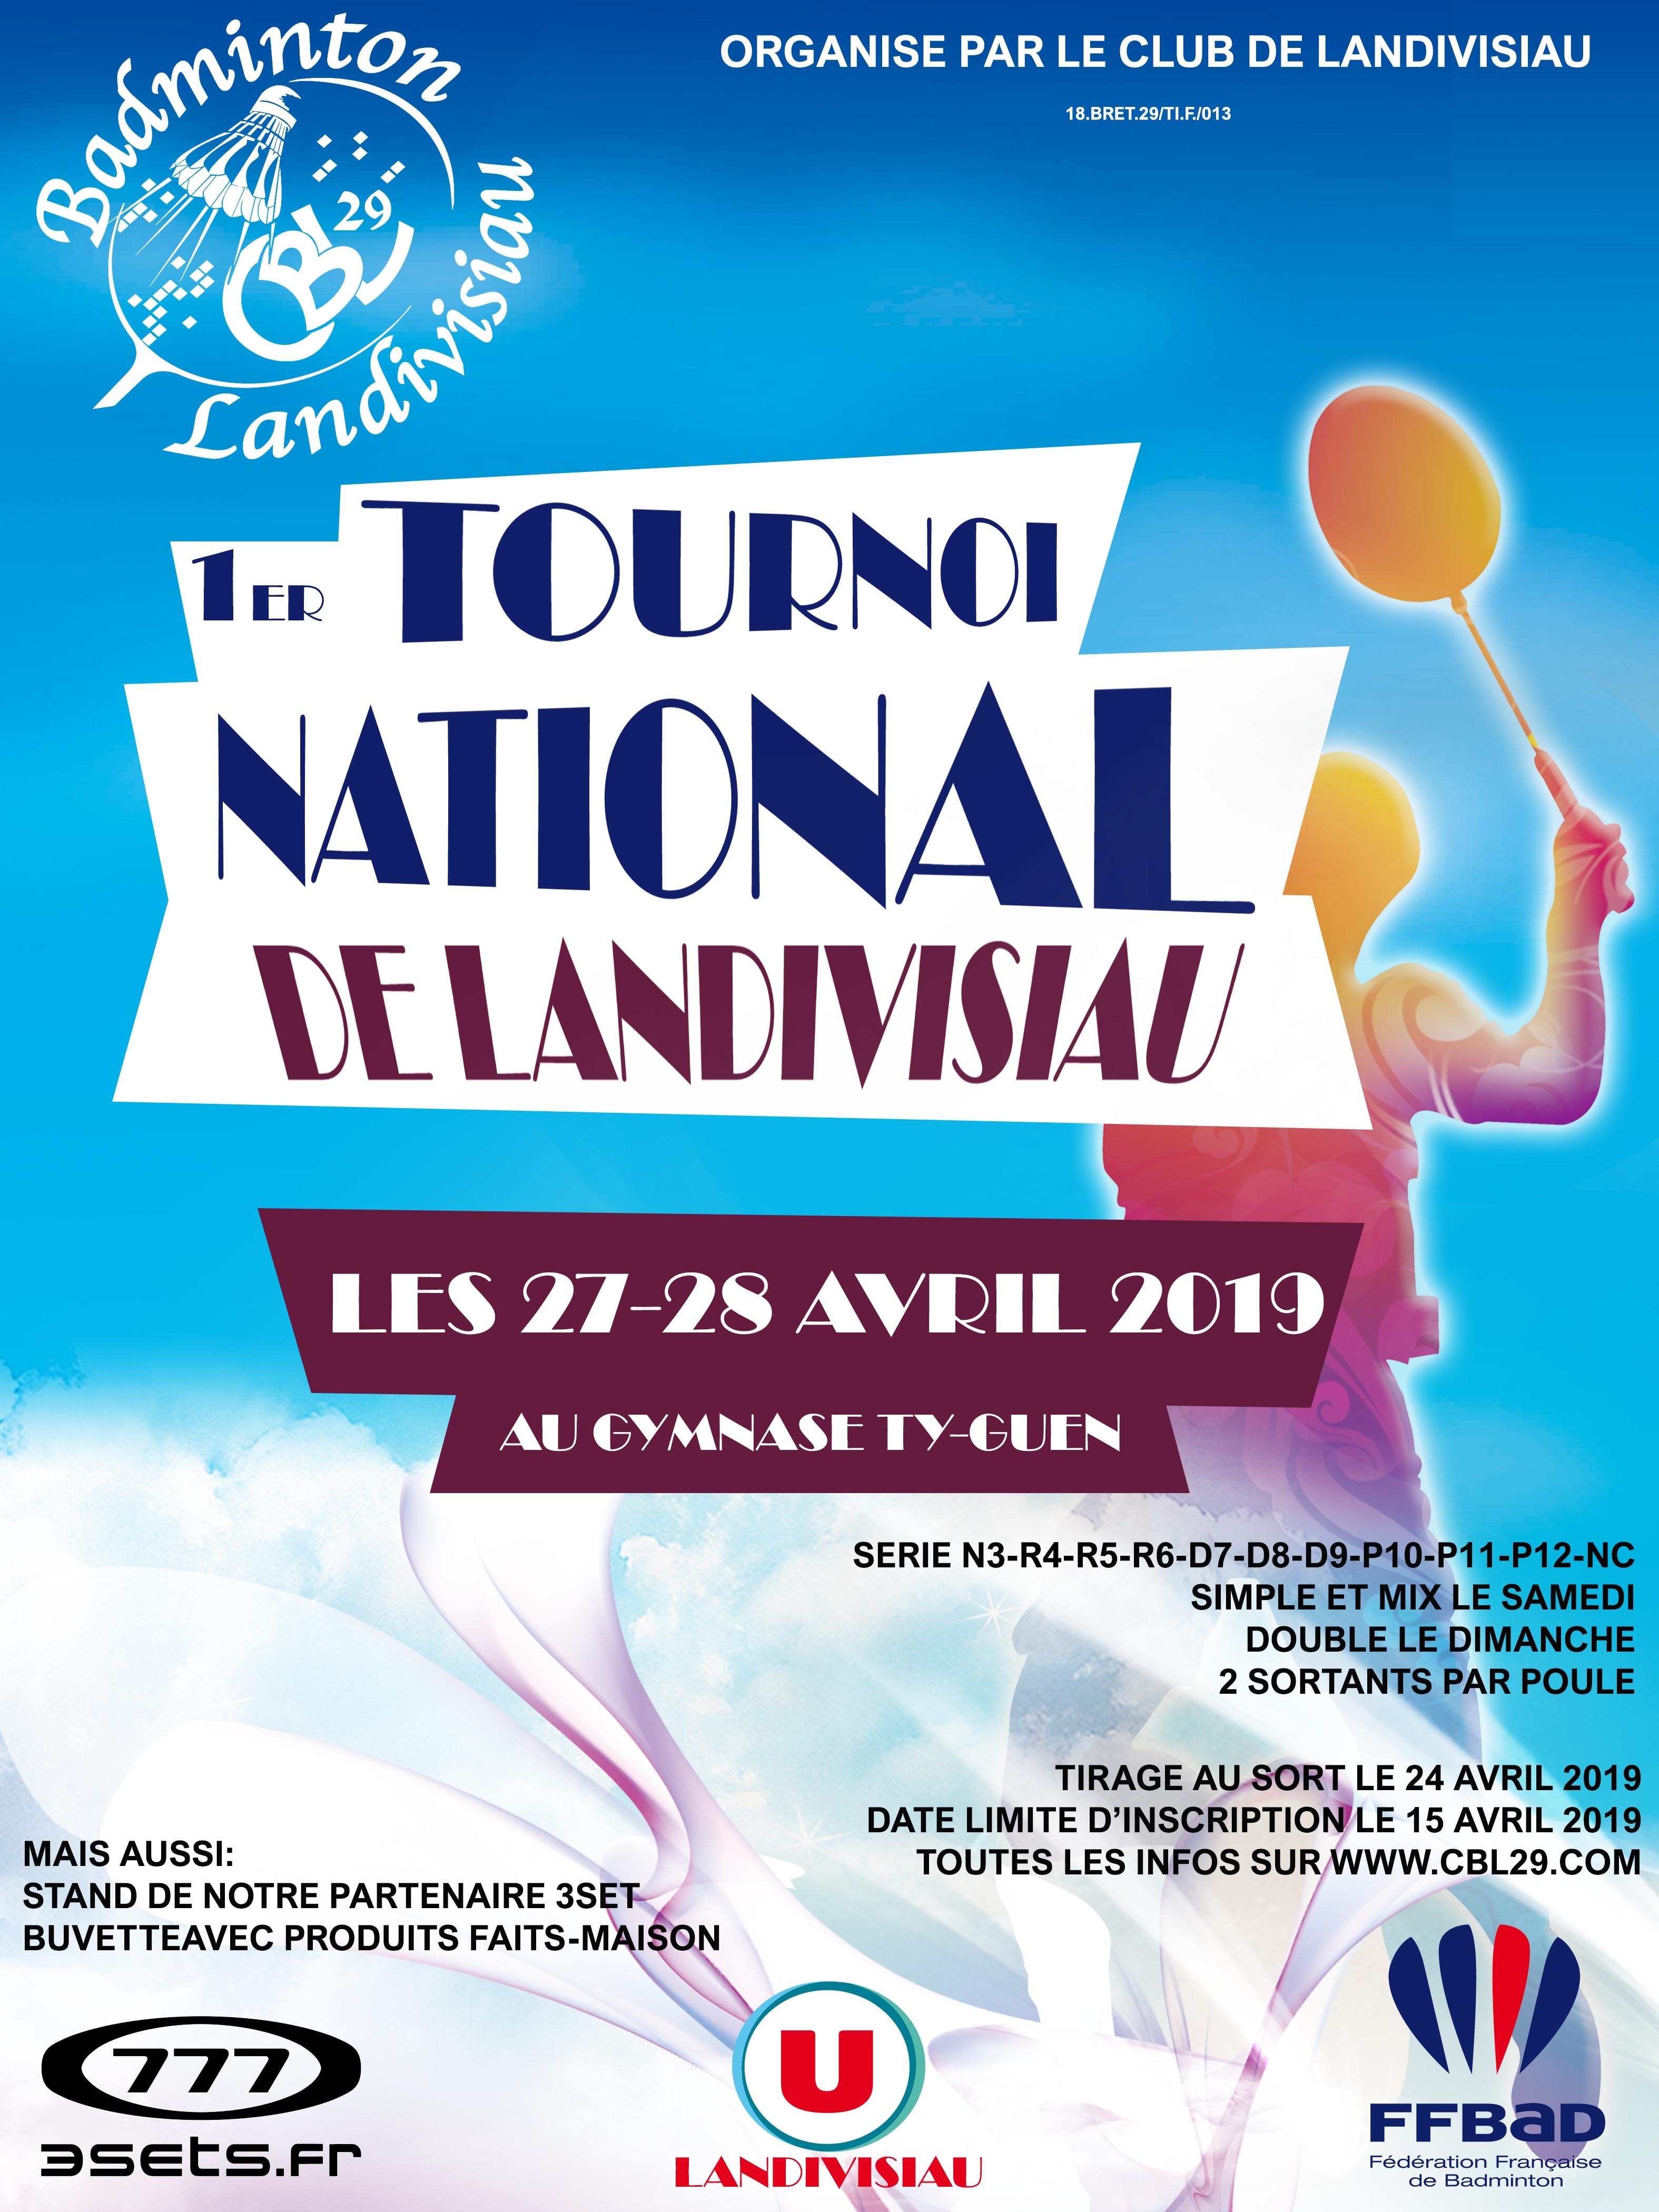 1er Tournoi National  les 27-28 avril 2019